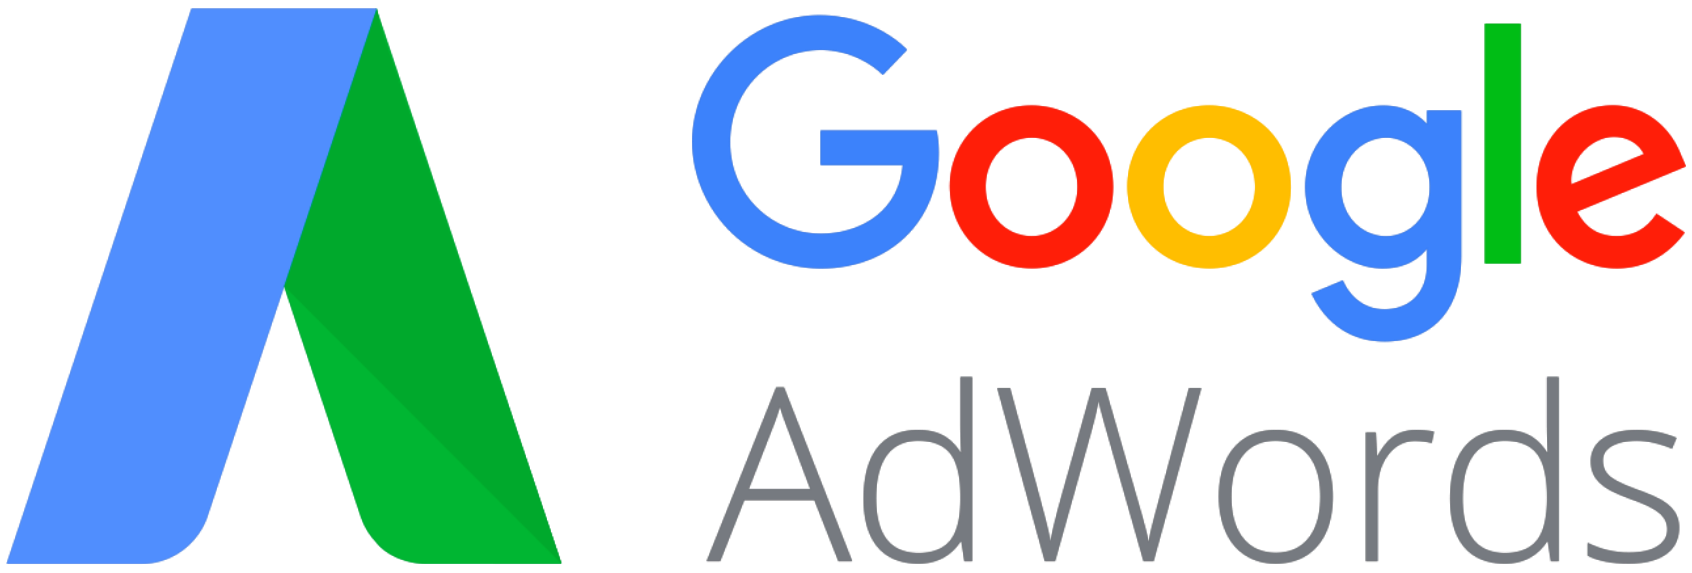 Google Adwords expert in canberra